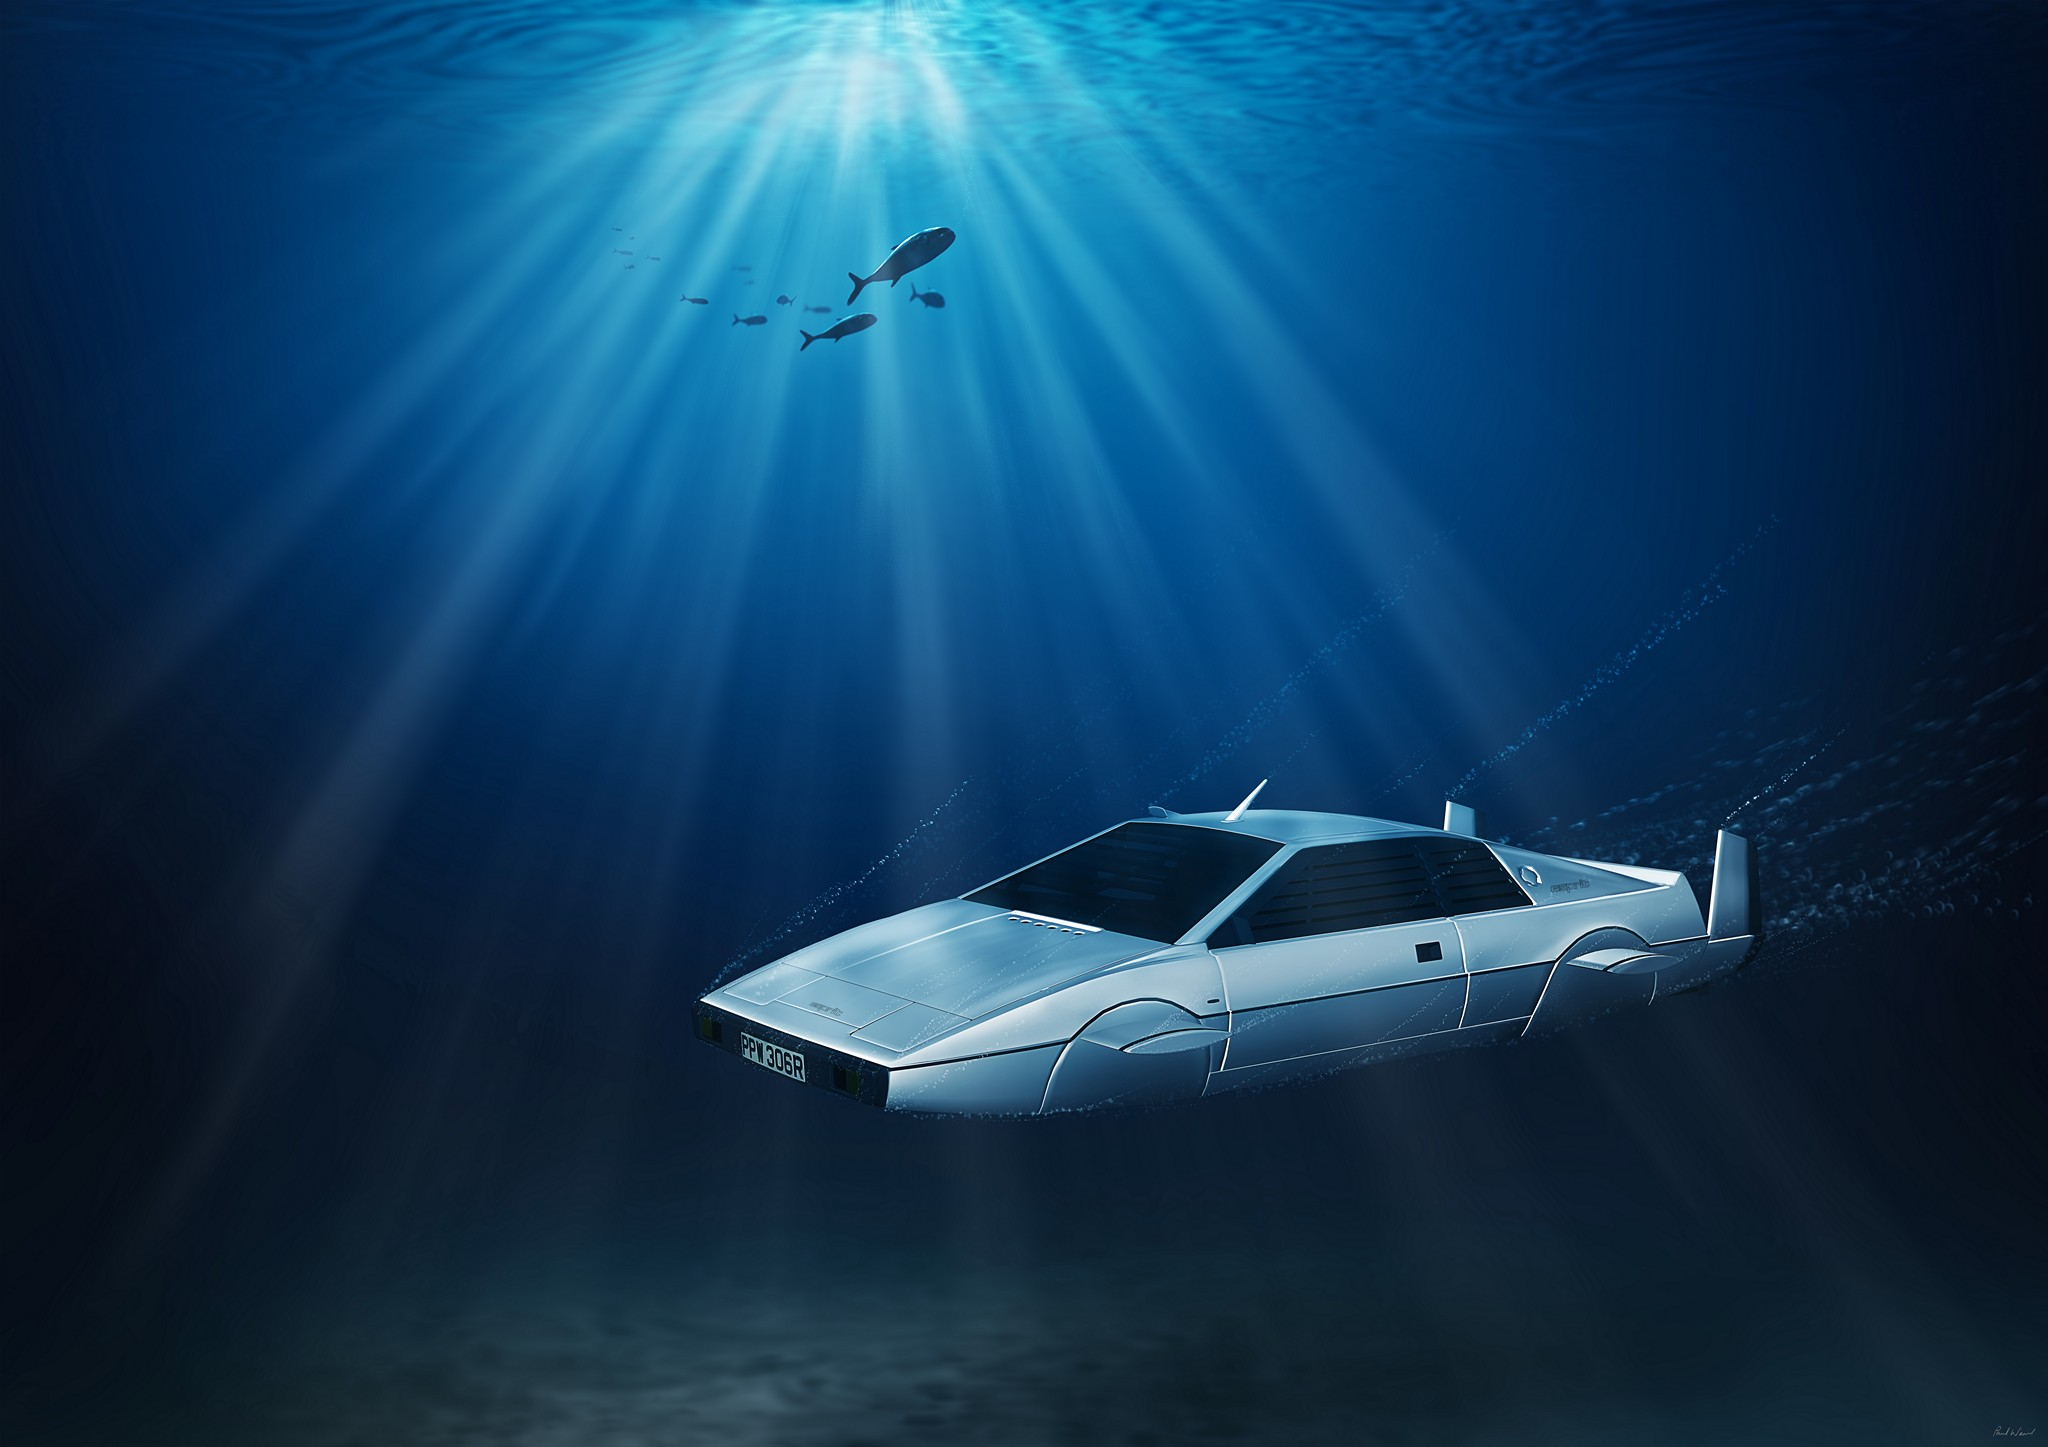 Lotus Esprit S1 submarine, James Bond car underwater, digital art by car photographer Paul Ward